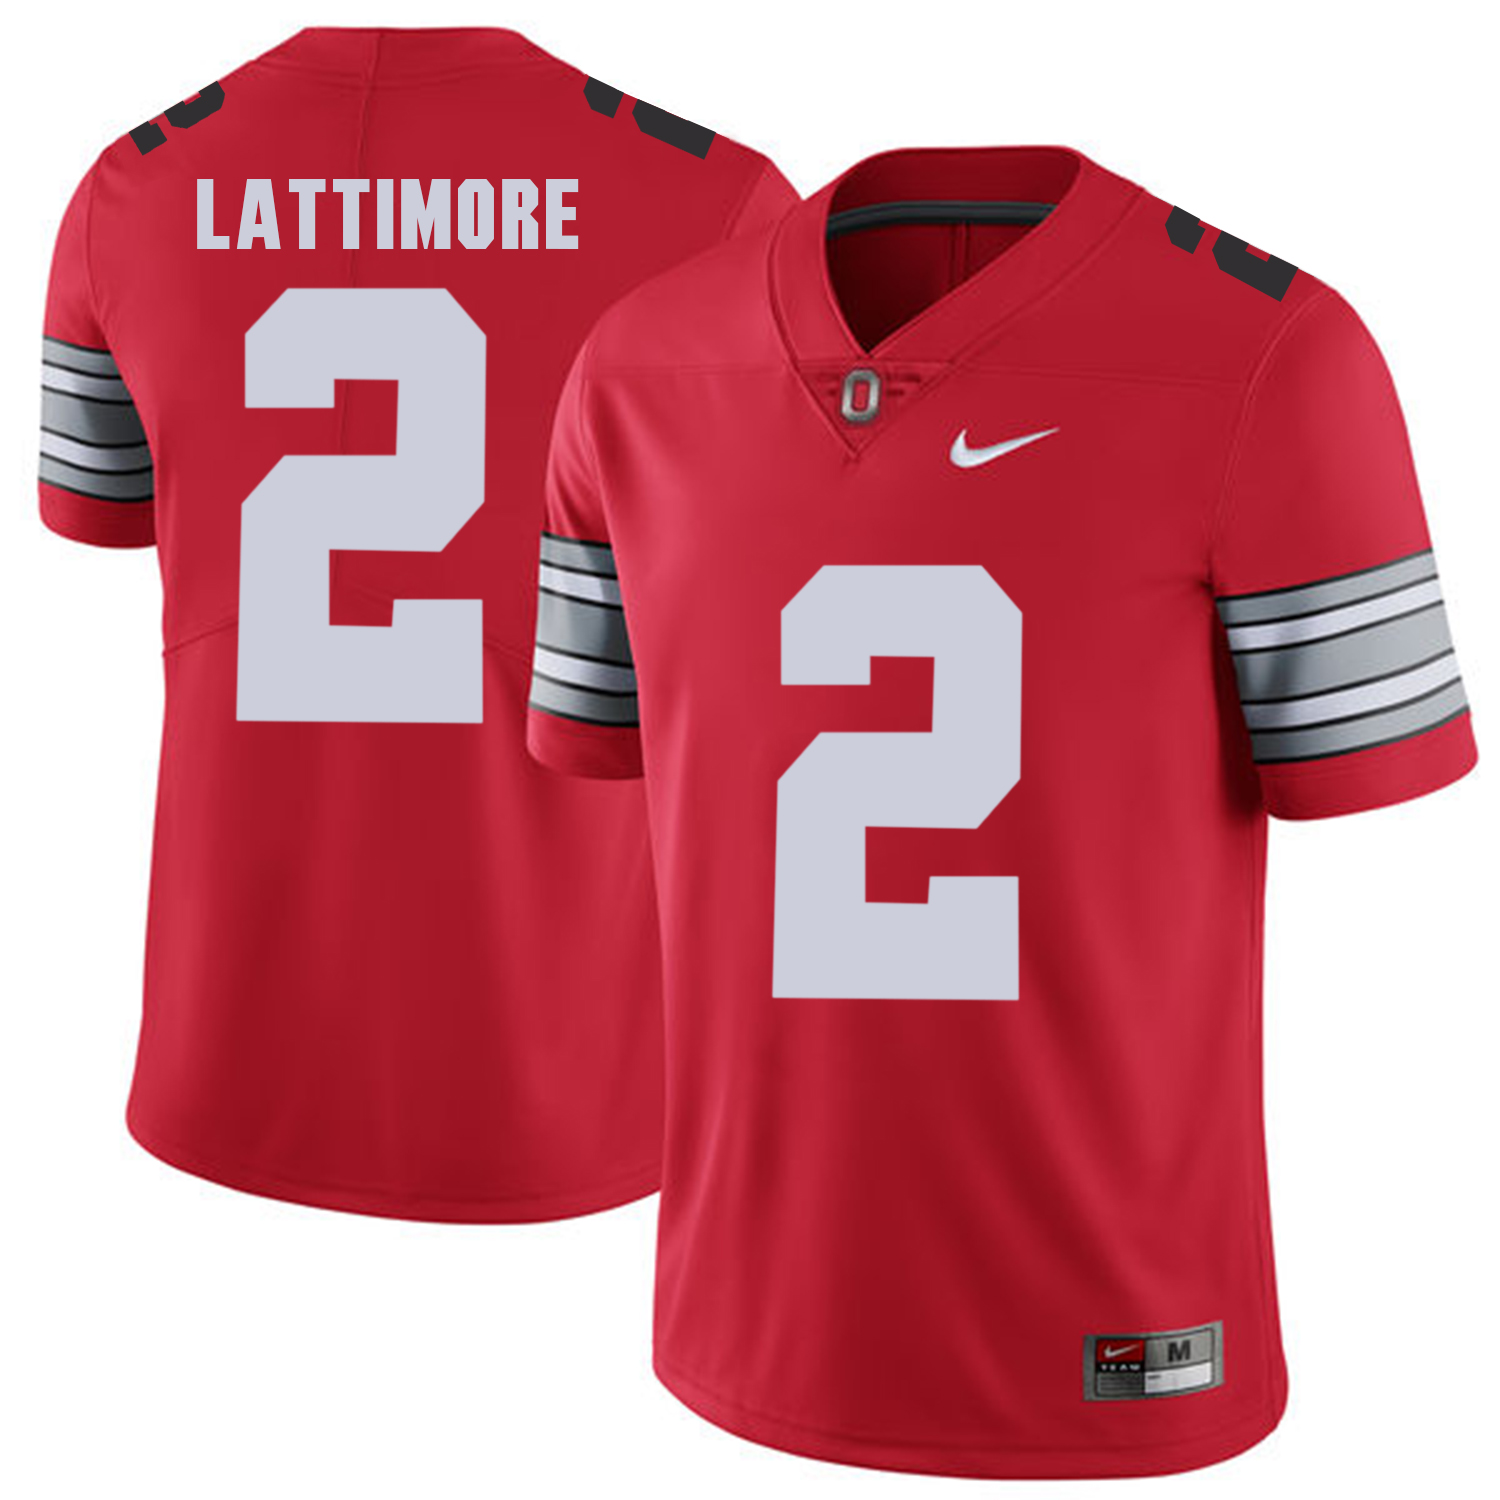 Ohio State Buckeyes 2 Marshon Lattimore Red 2018 Spring Game College Football Limited Jersey